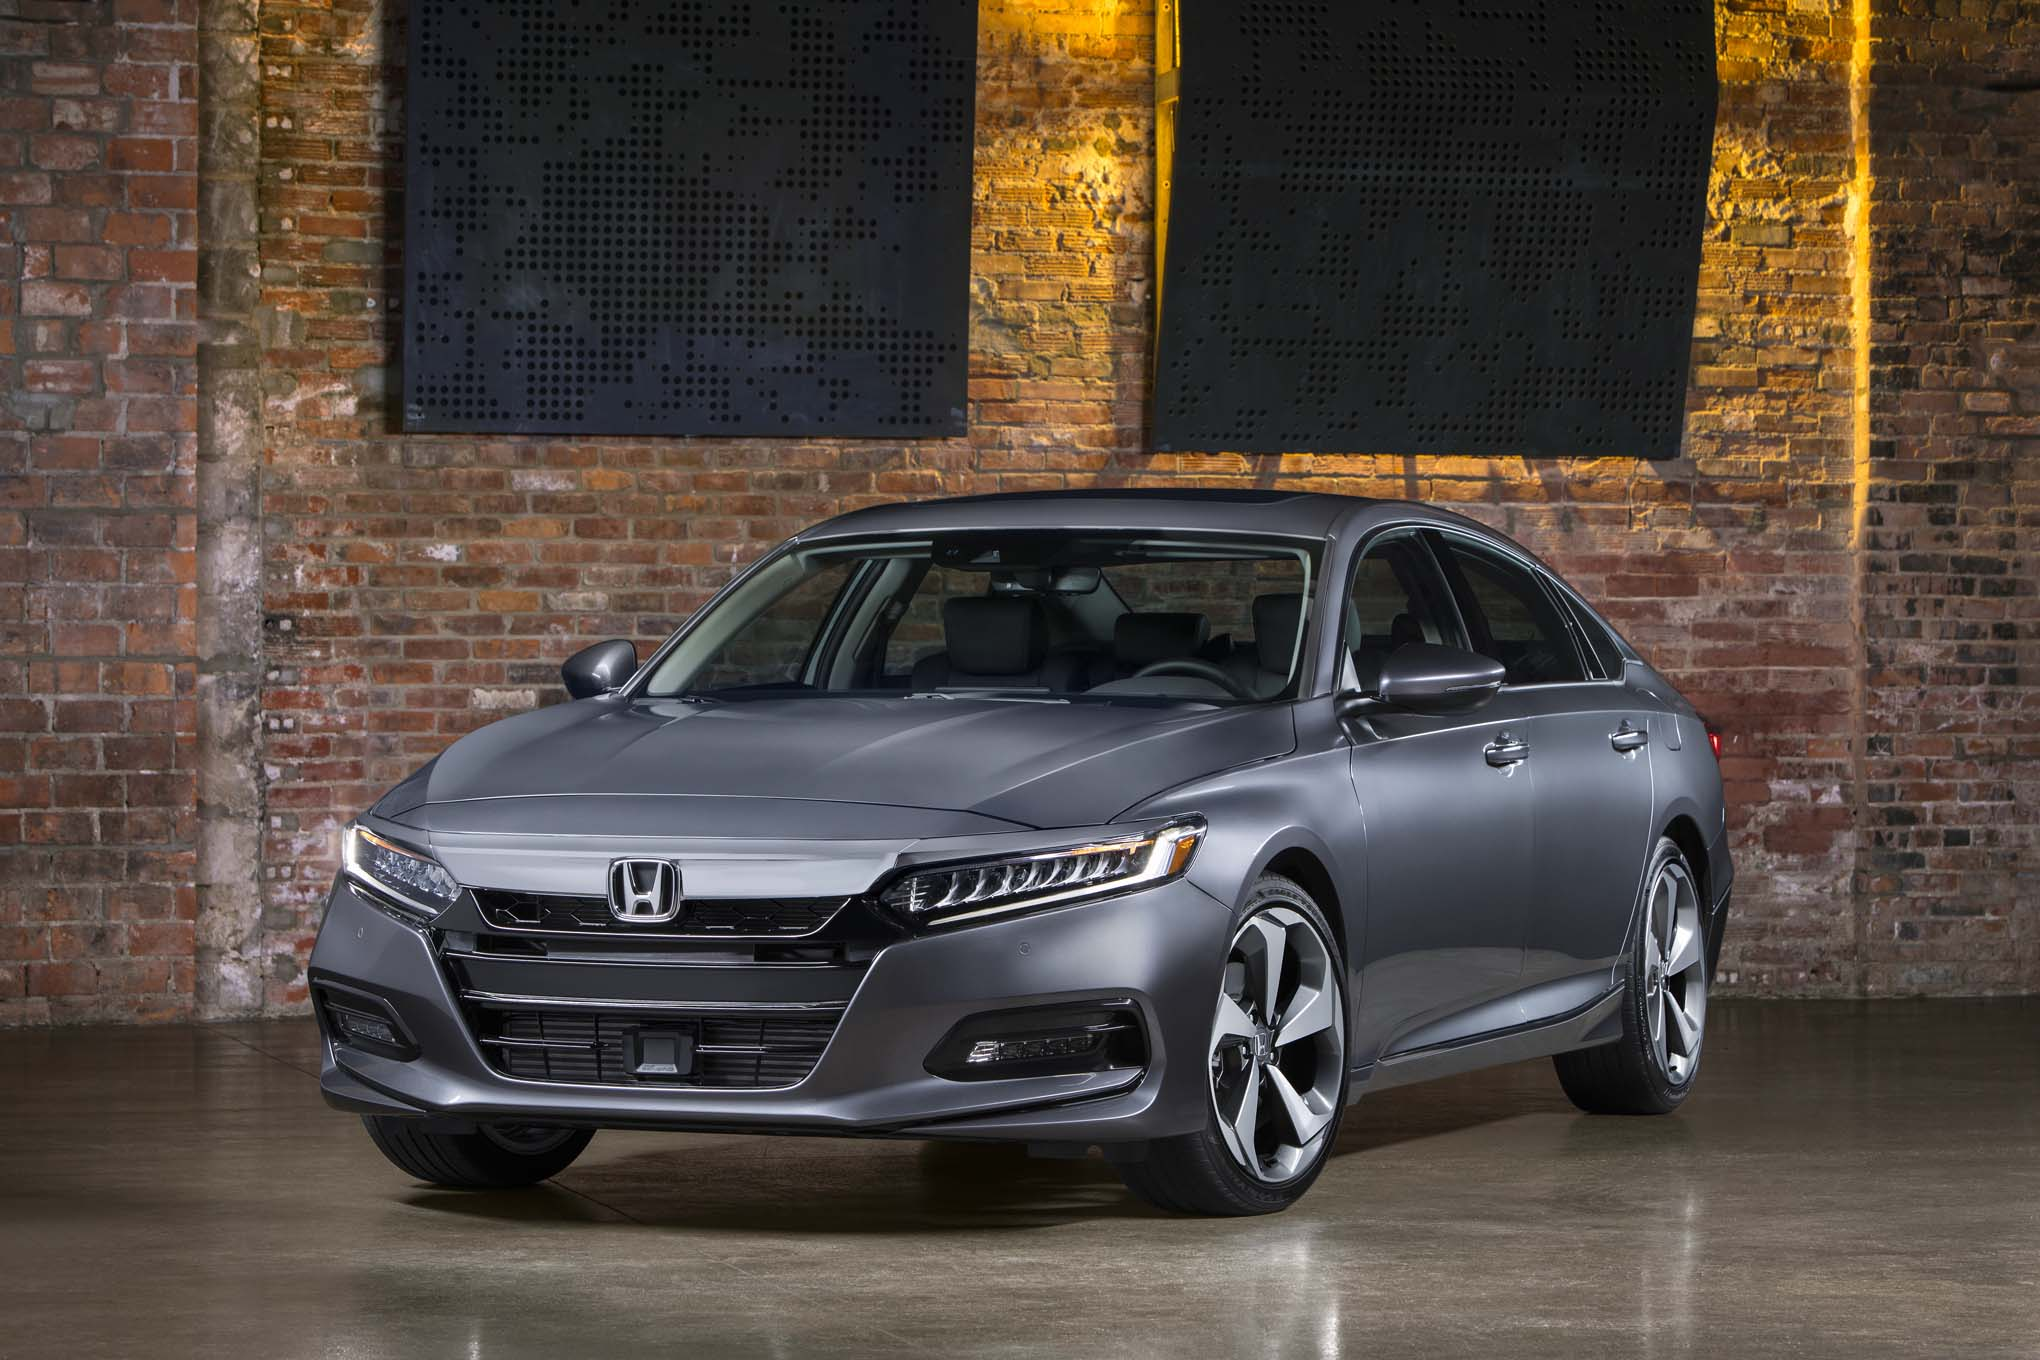 2018 honda urban. exellent urban 3155 on 2018 honda urban